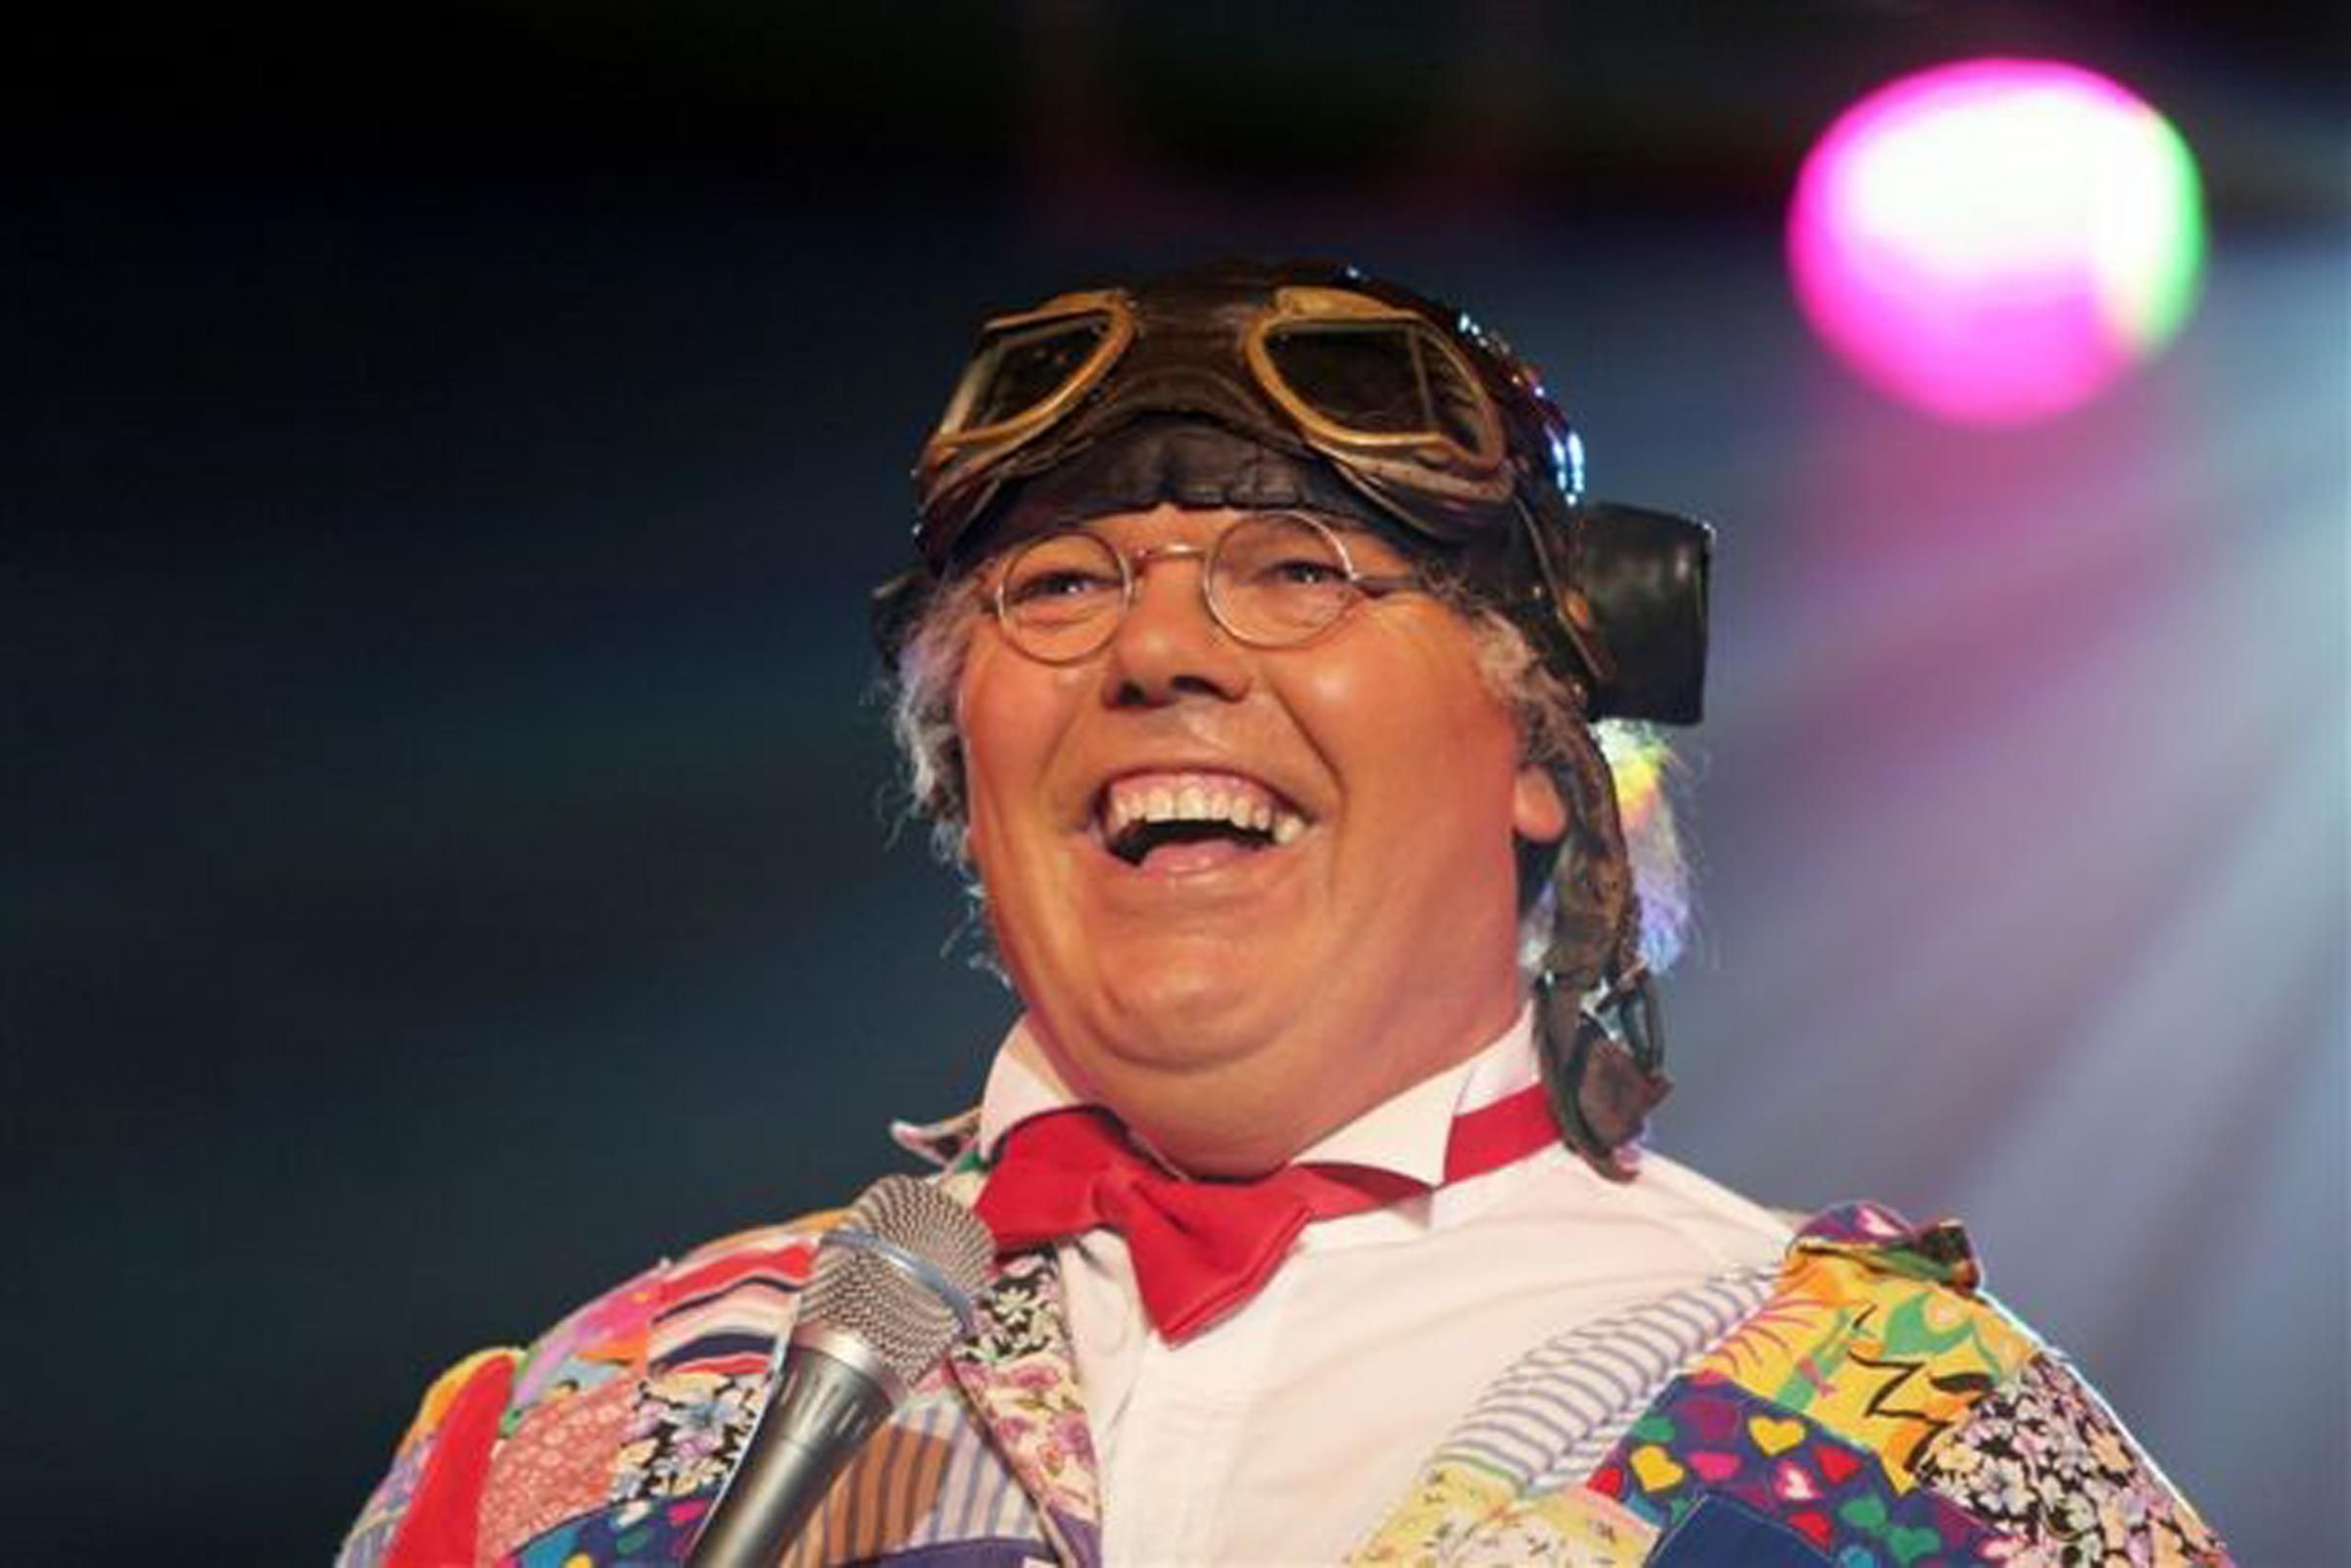 best of Brown Roy among chubby